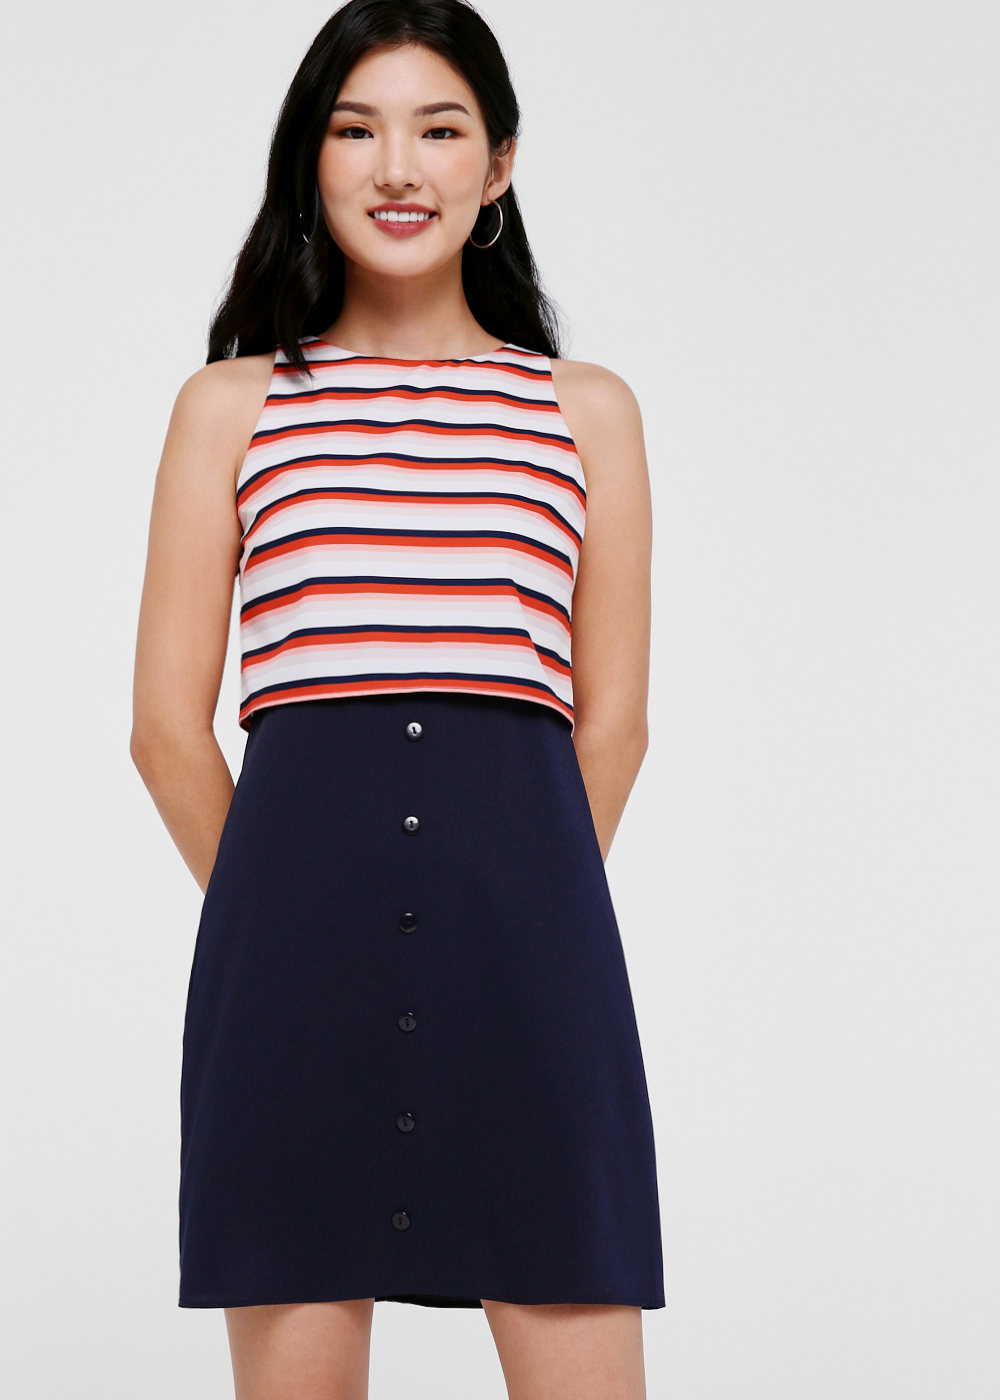 Braylee Contrast A-line Dress in Candy Stripe